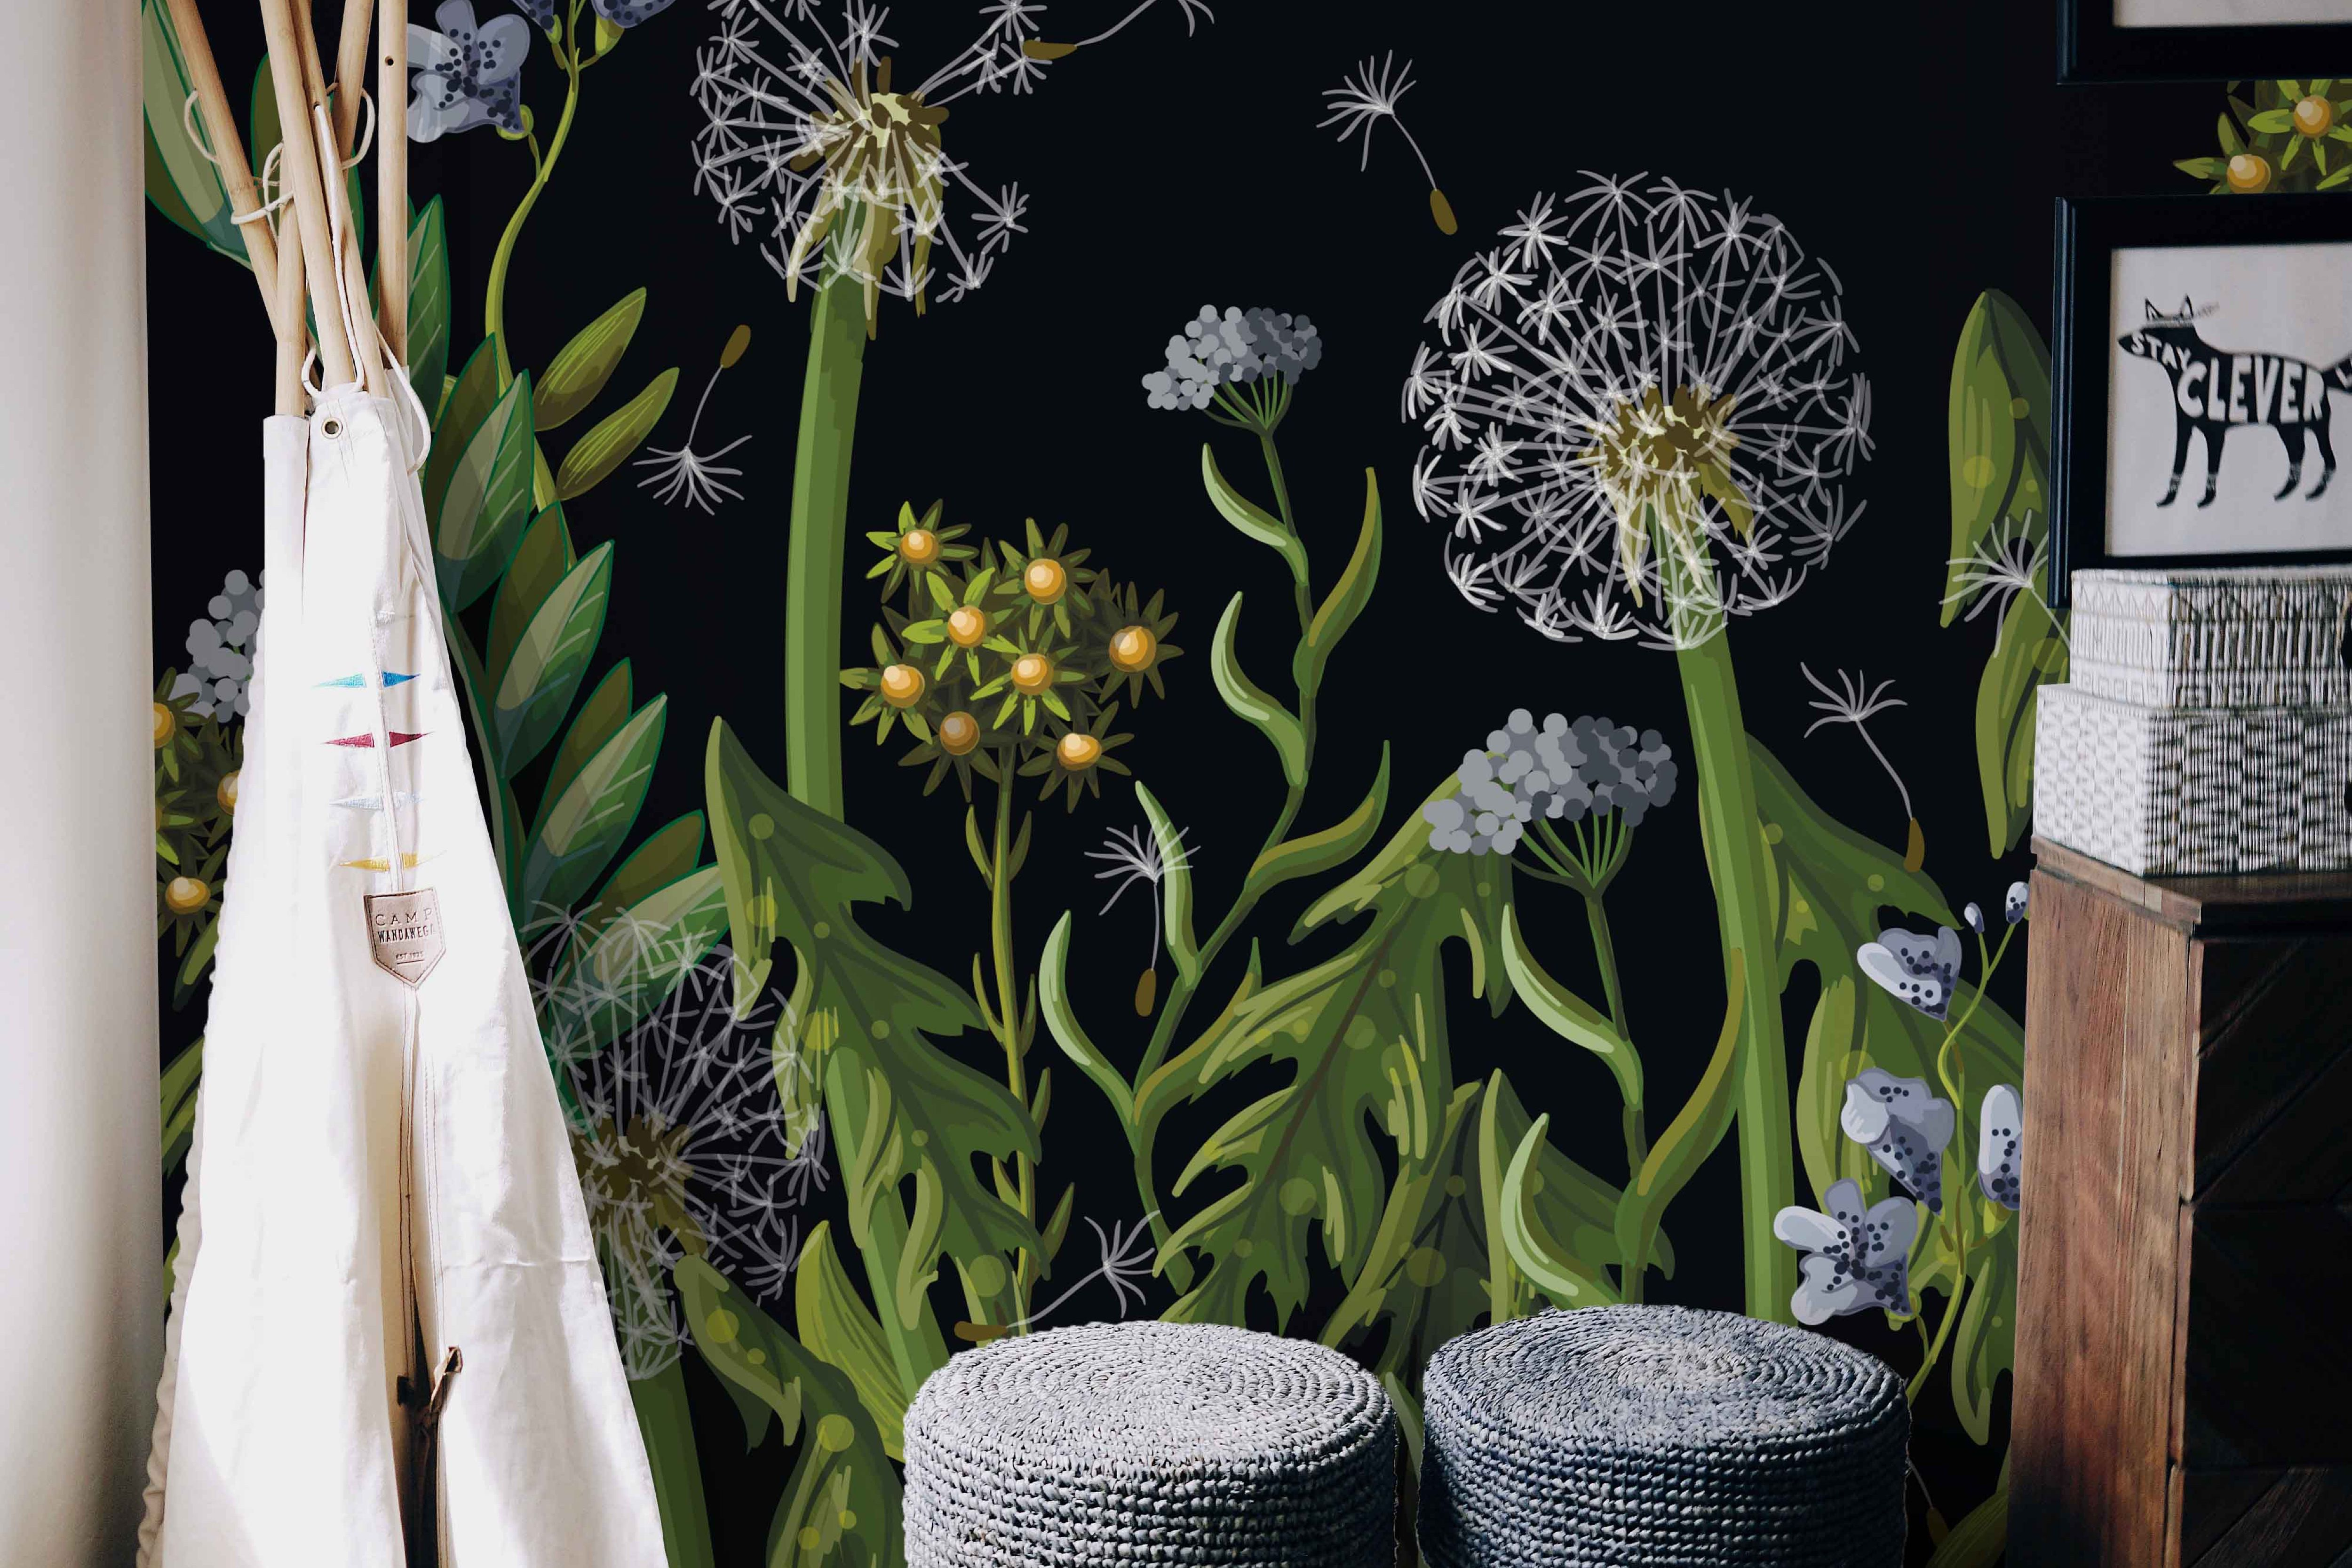 Dandelions on Black Background Wall Mural - Removable Self ...